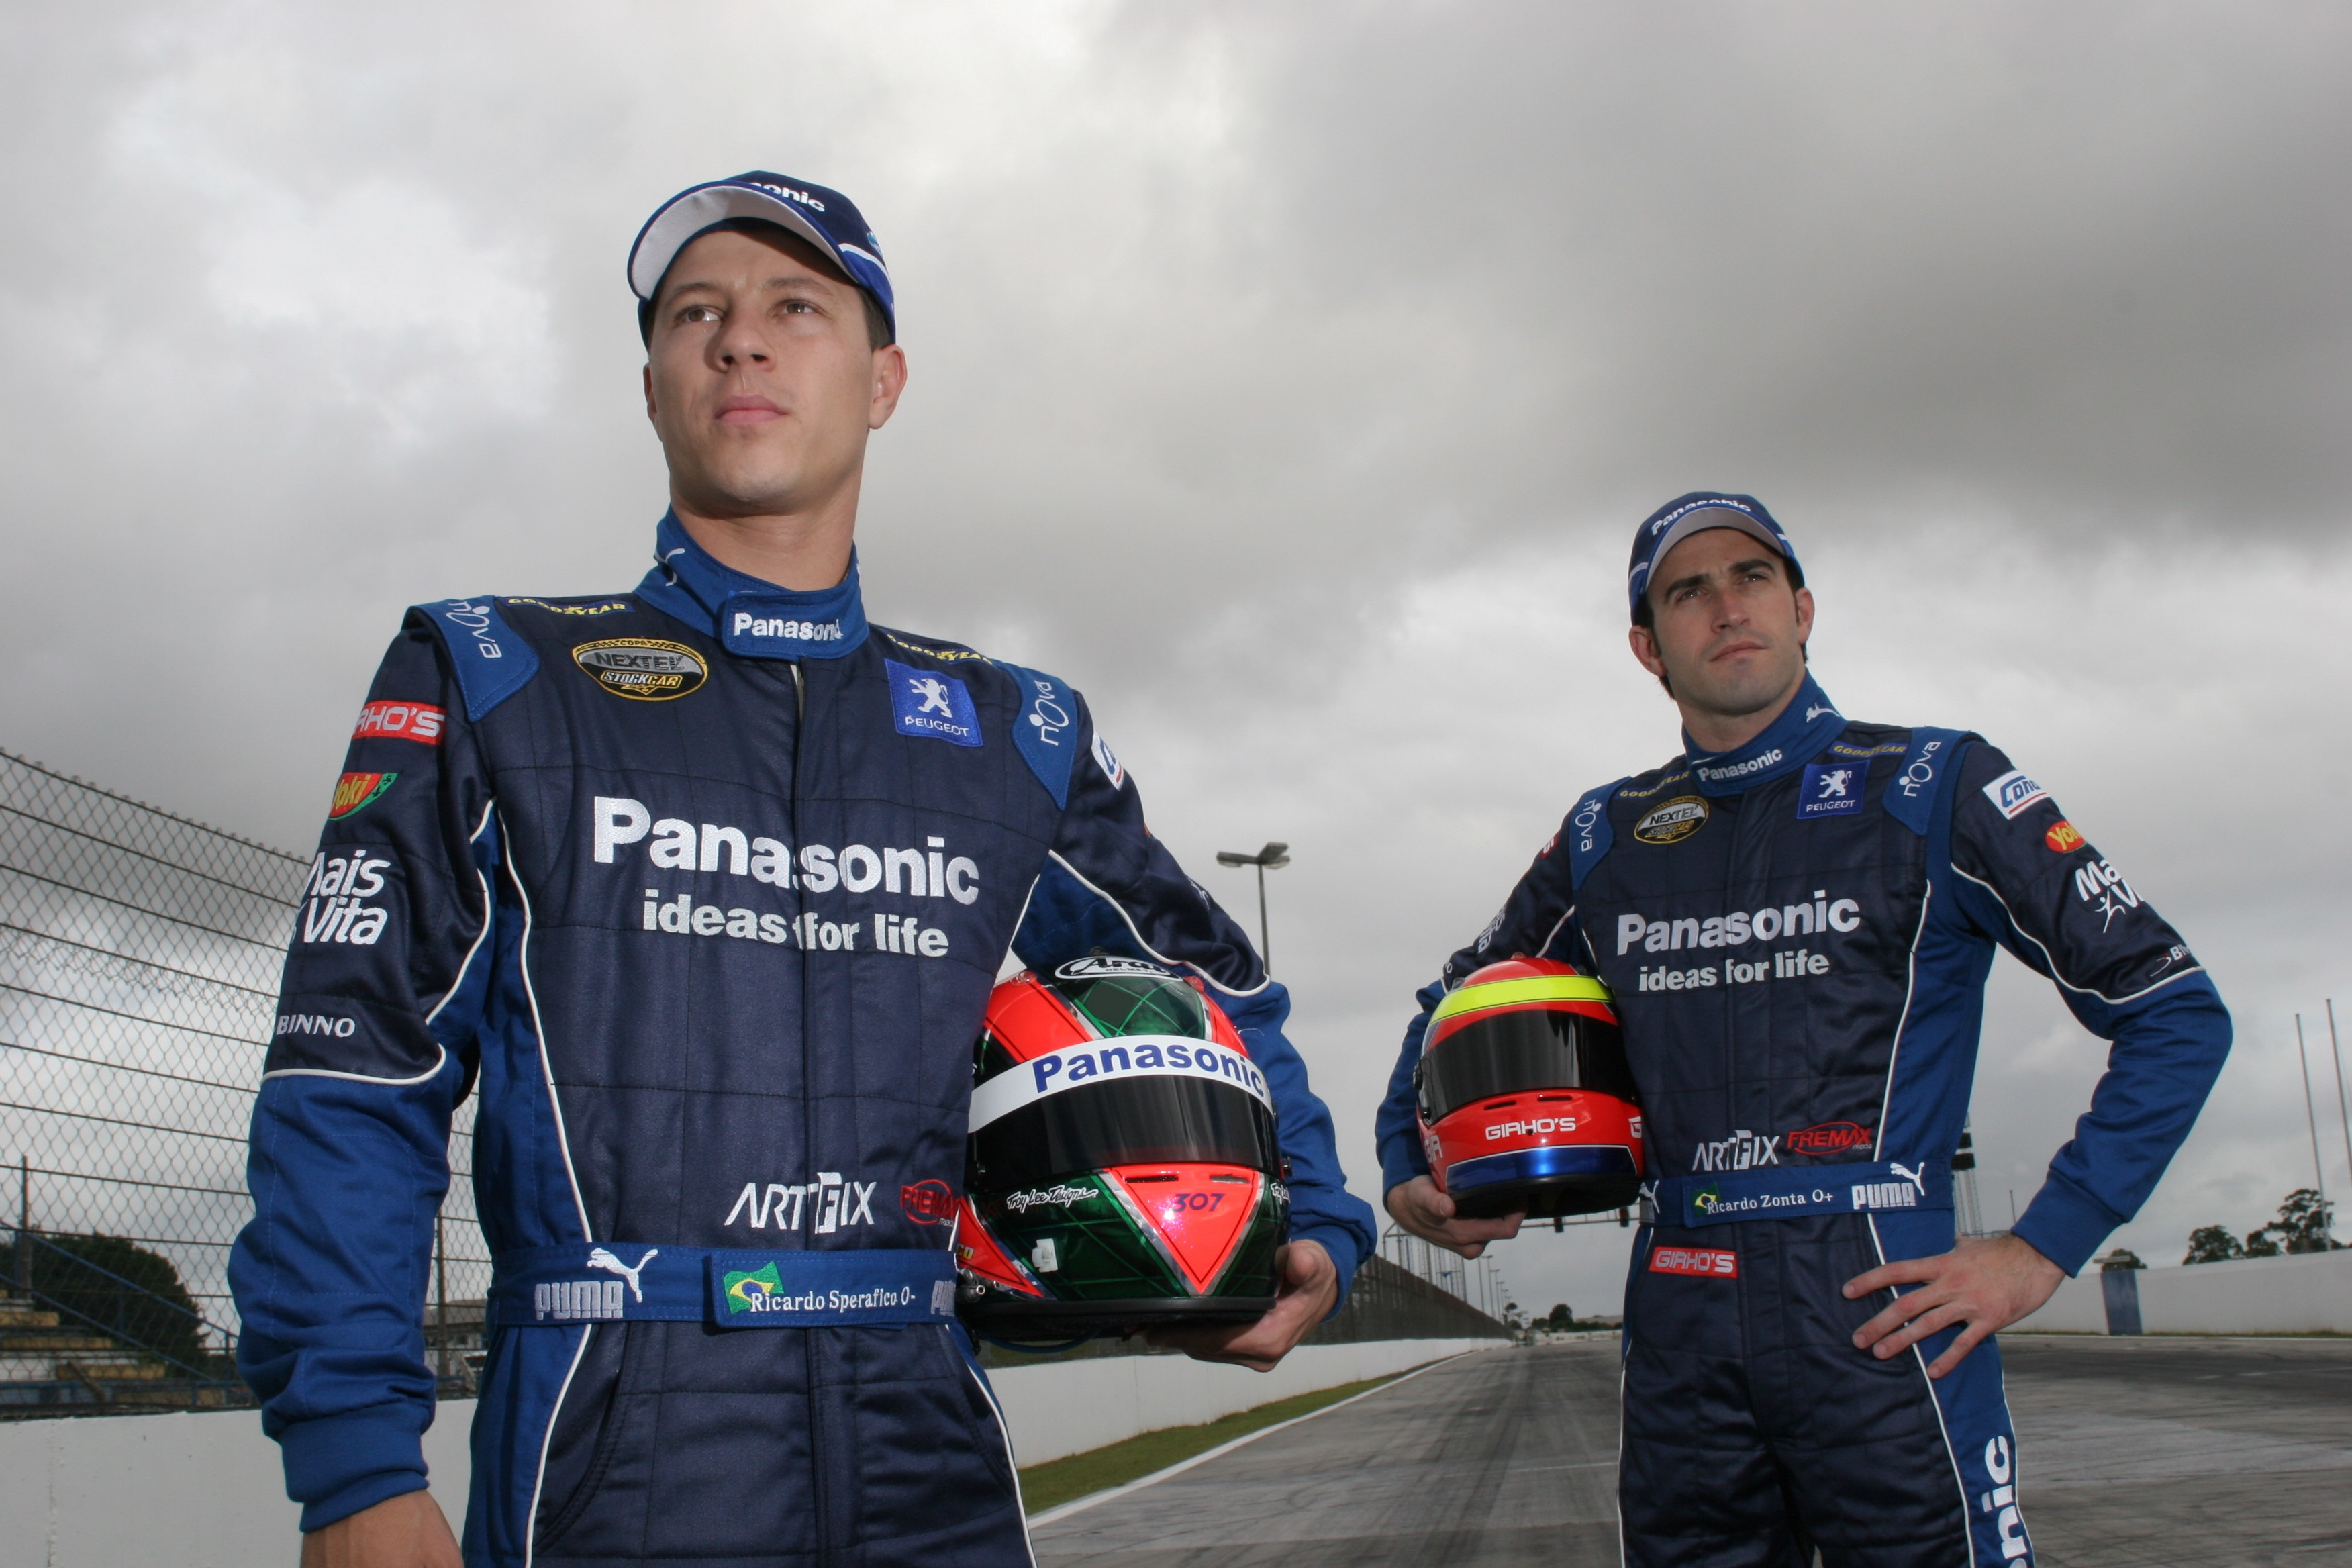 PANASONIC RACING